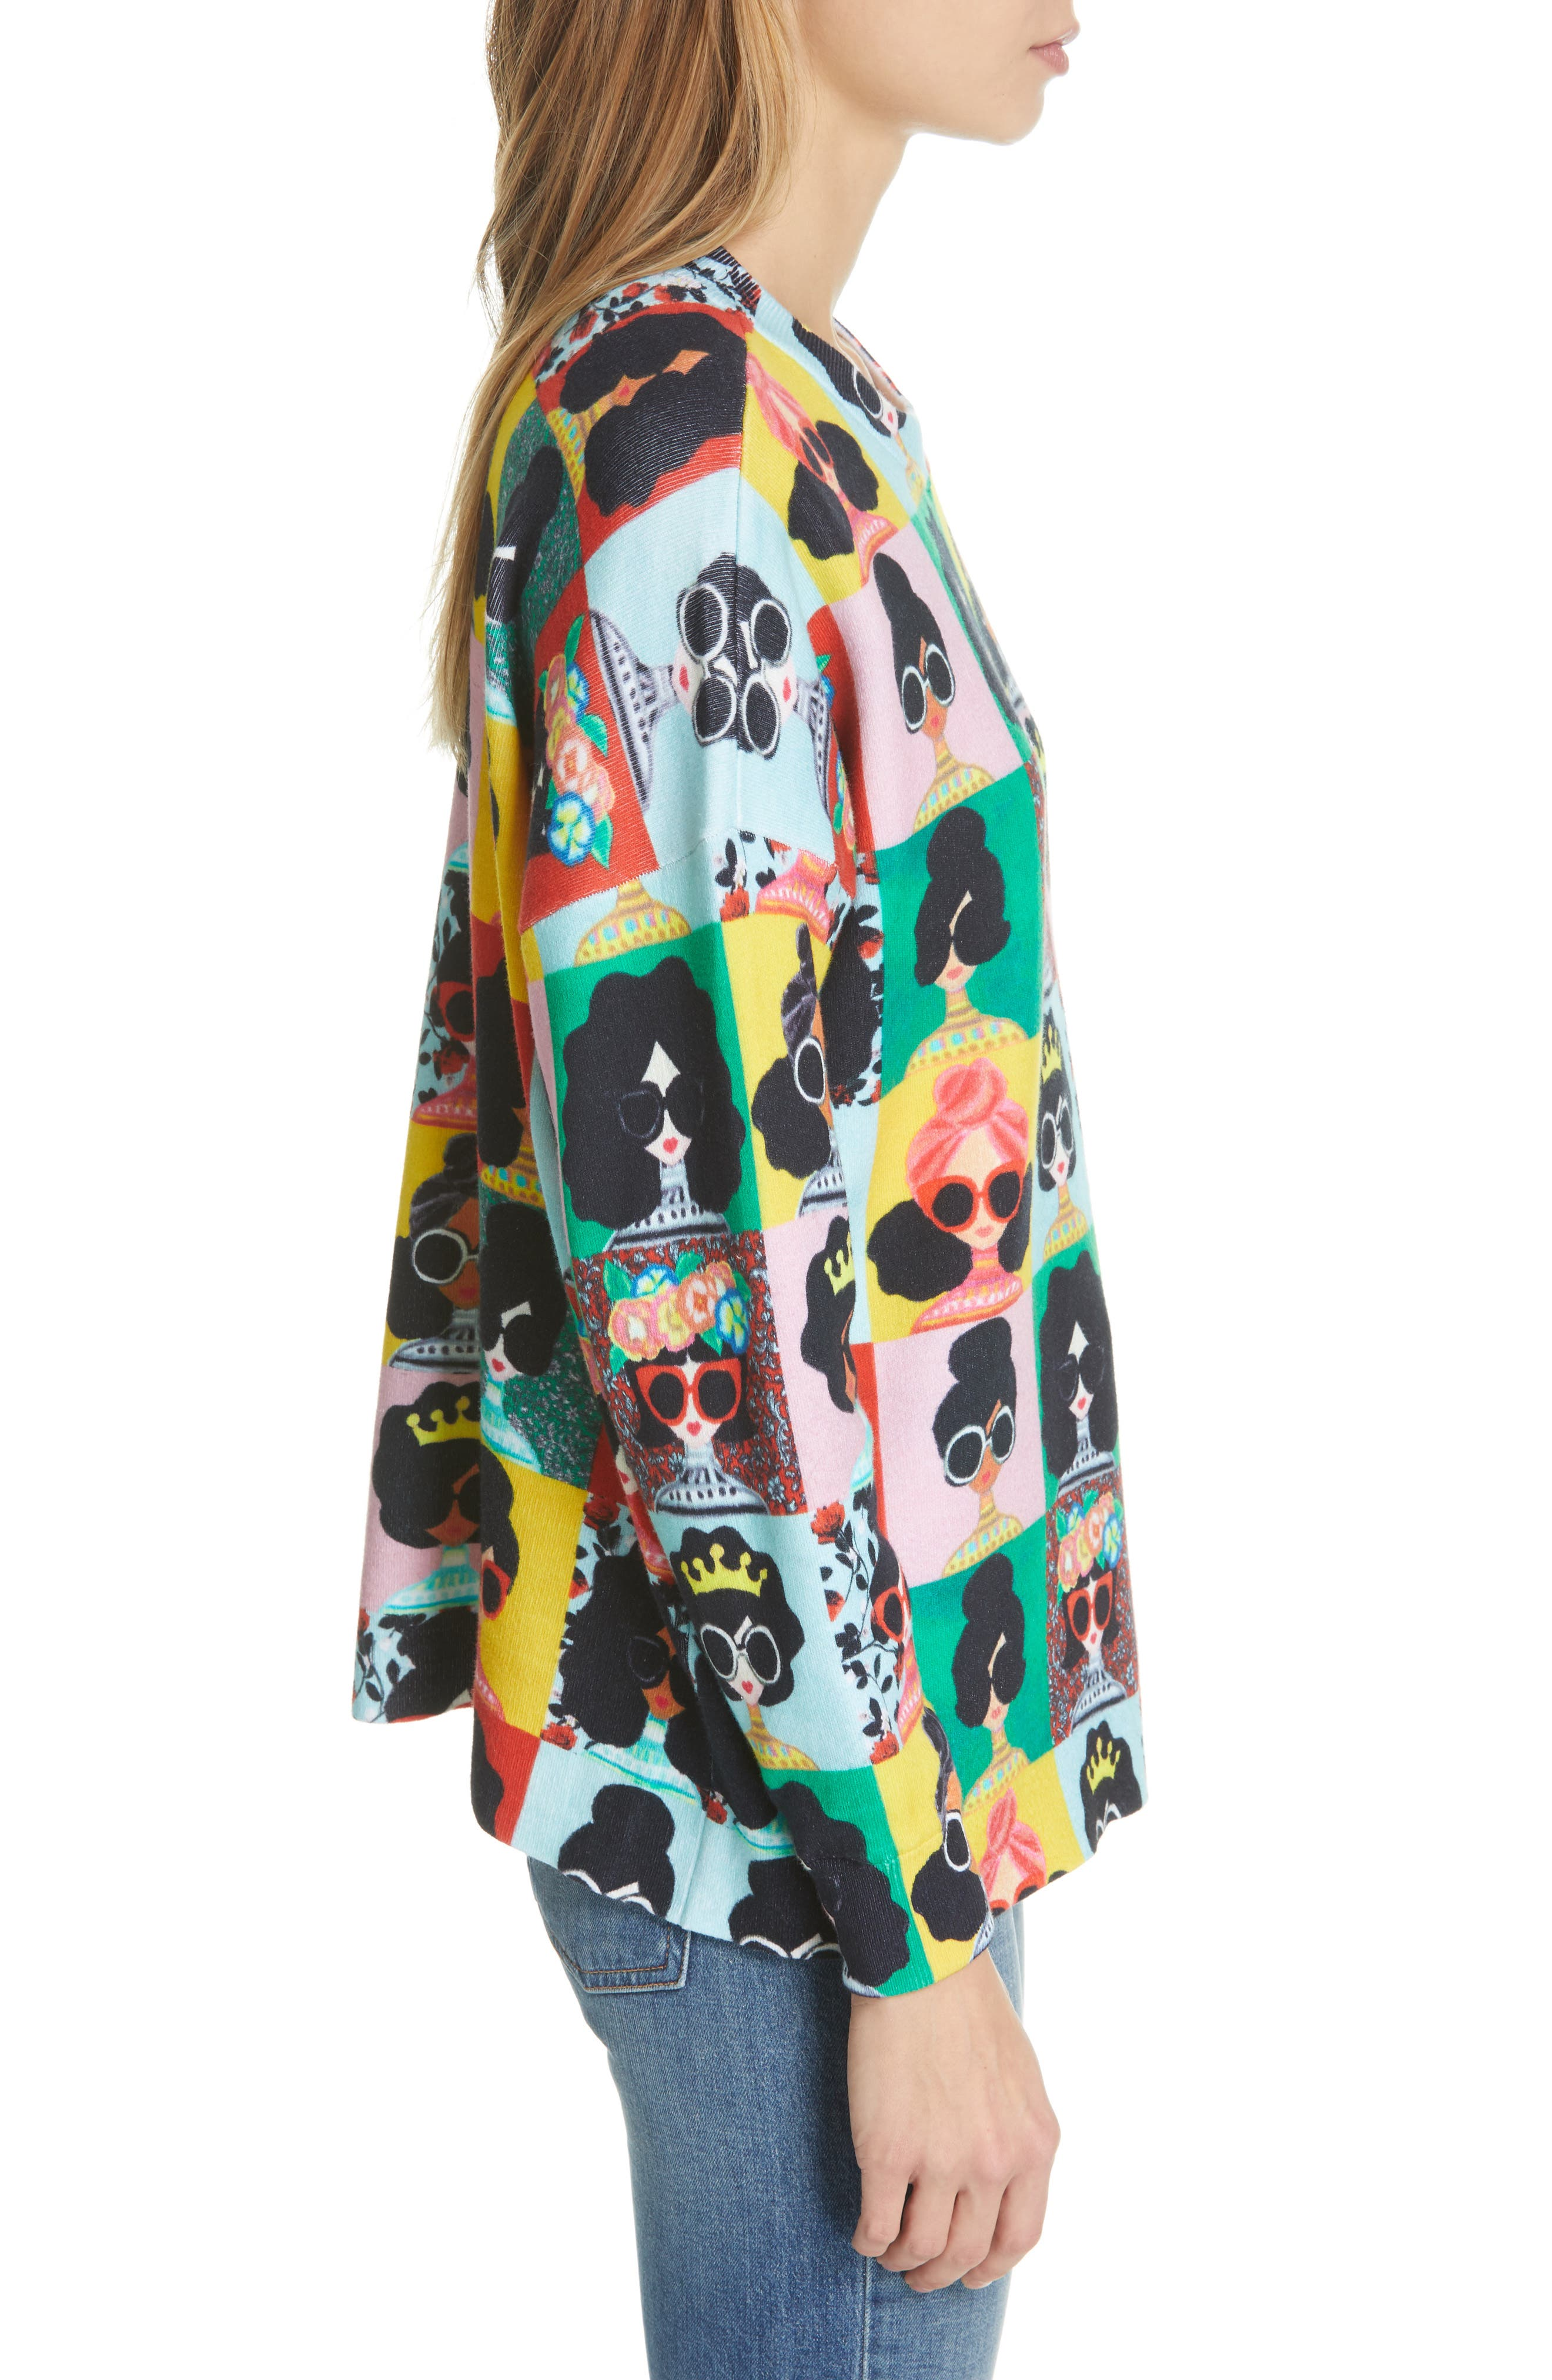 ALICE + OLIVIA,                             Print Pullover,                             Alternate thumbnail 3, color,                             MULTI